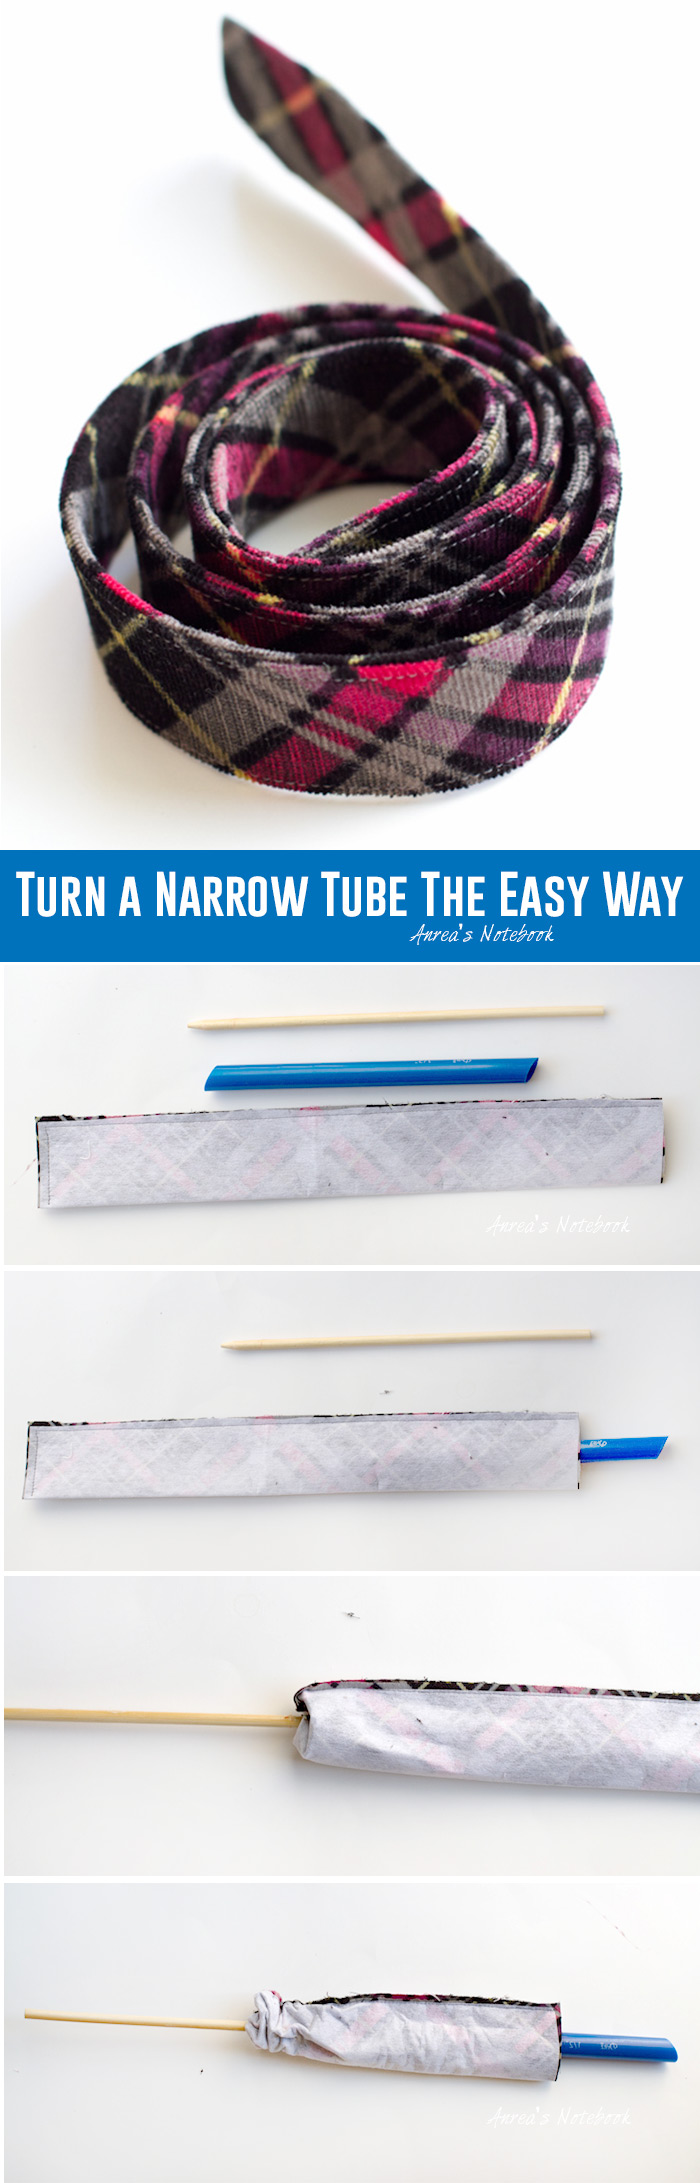 How to turn a narrow tube the easy way. i.e. Why had I never done this before???